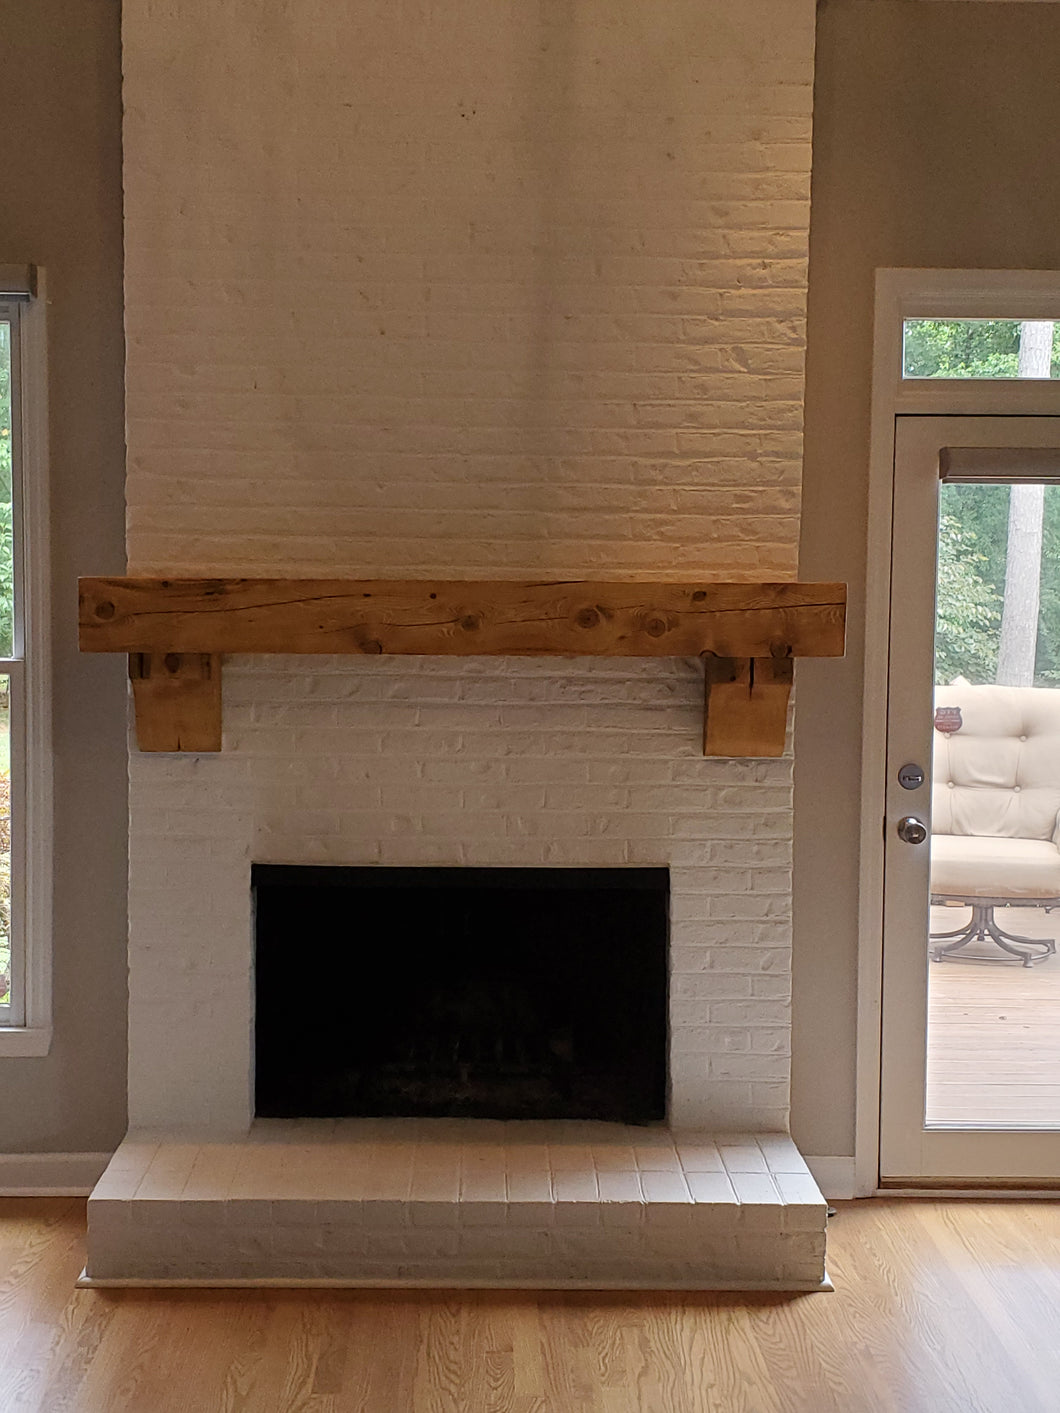 Jayme's fireplace mantel